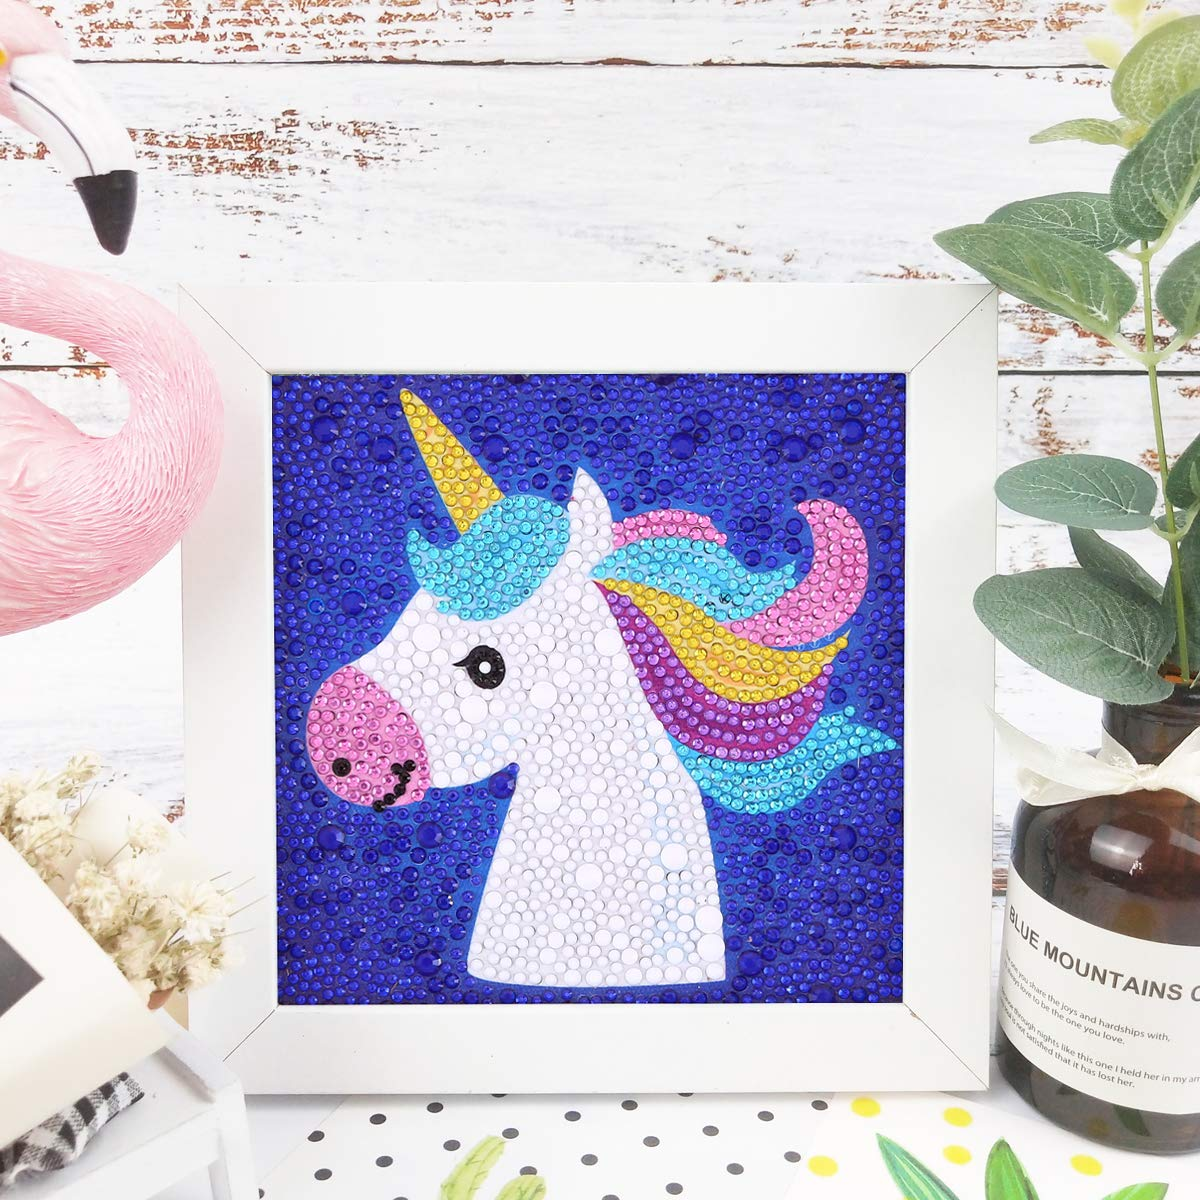 Wishing Bear Maydear Small and Easy DIY 5d Diamond Painting Kits with Frame for Beginner with White Frame for Kids 6X6 inch